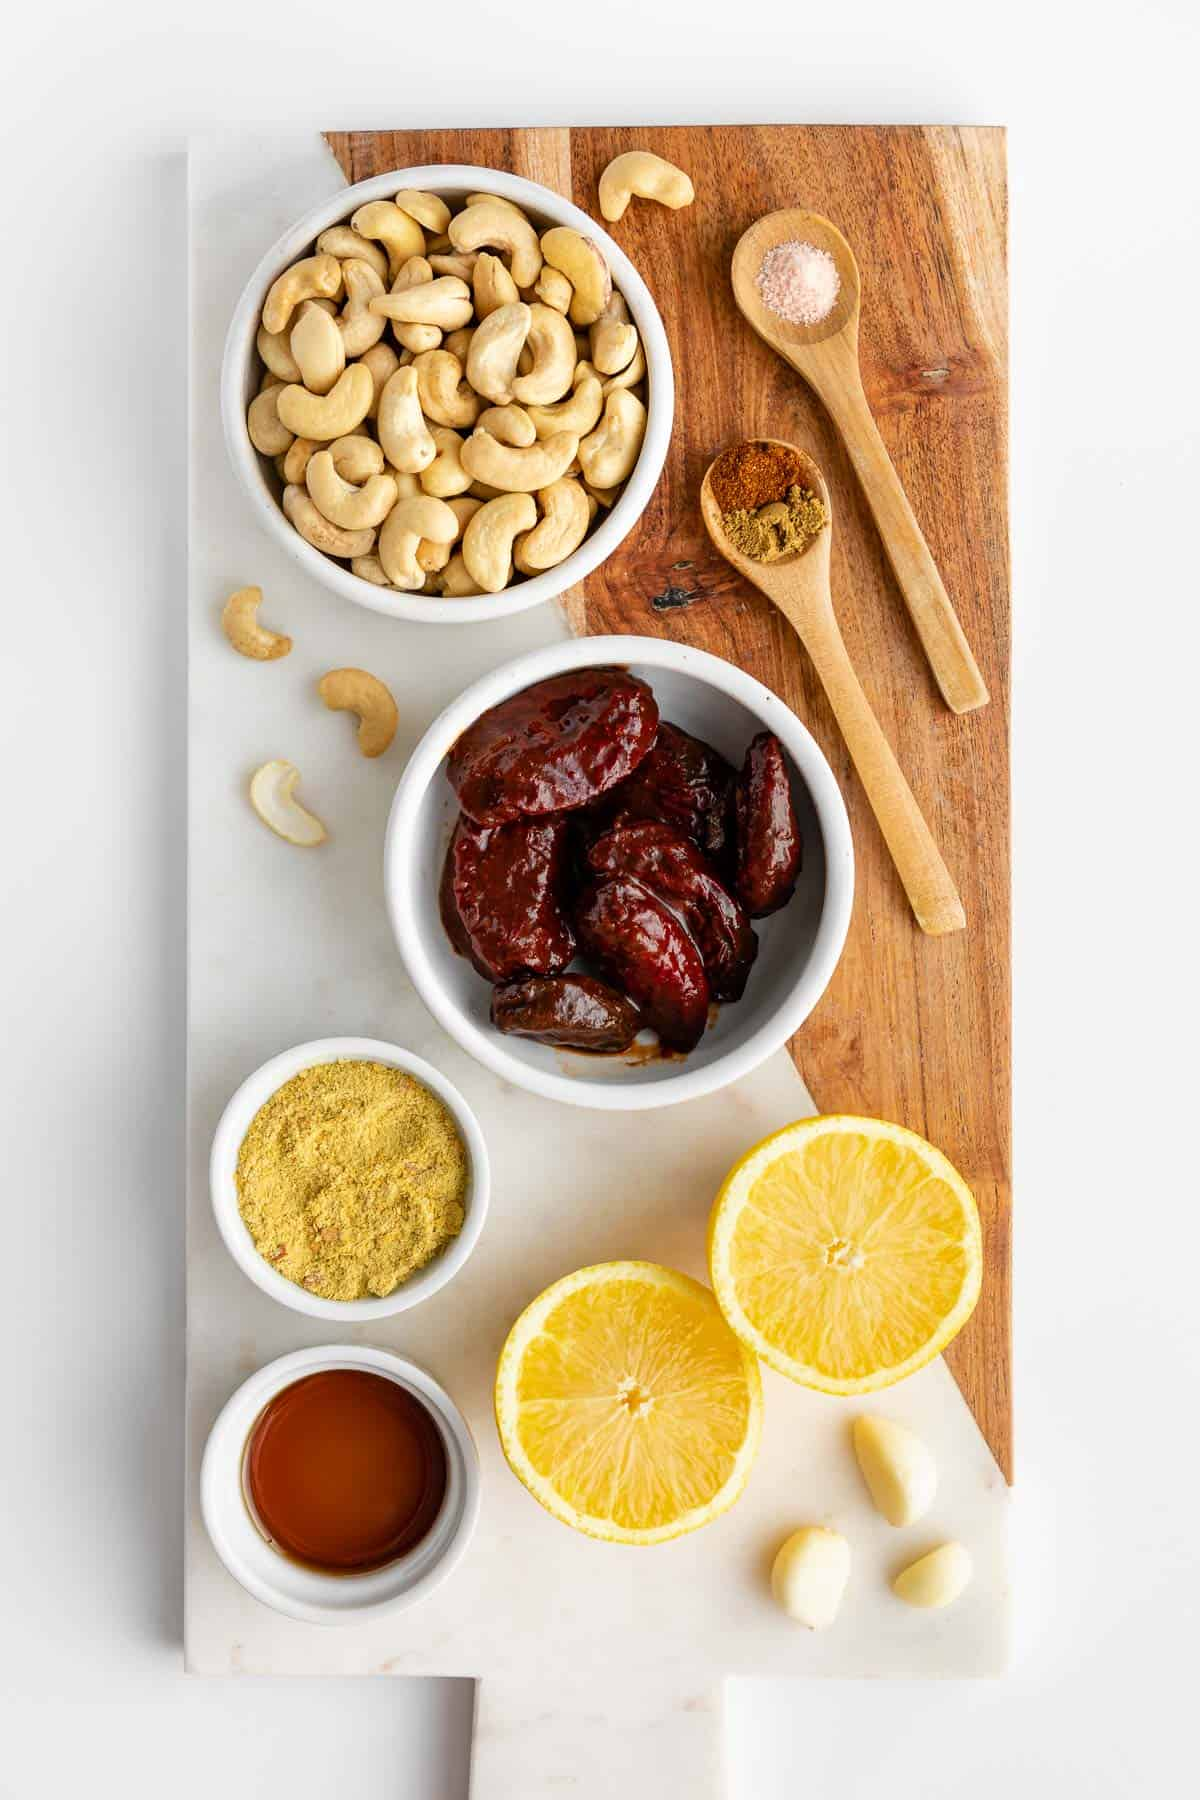 cashews, chipotle peppers in adobo sauce, lemon, nutritional yeast, maple syrup, and spices on a marble serving board